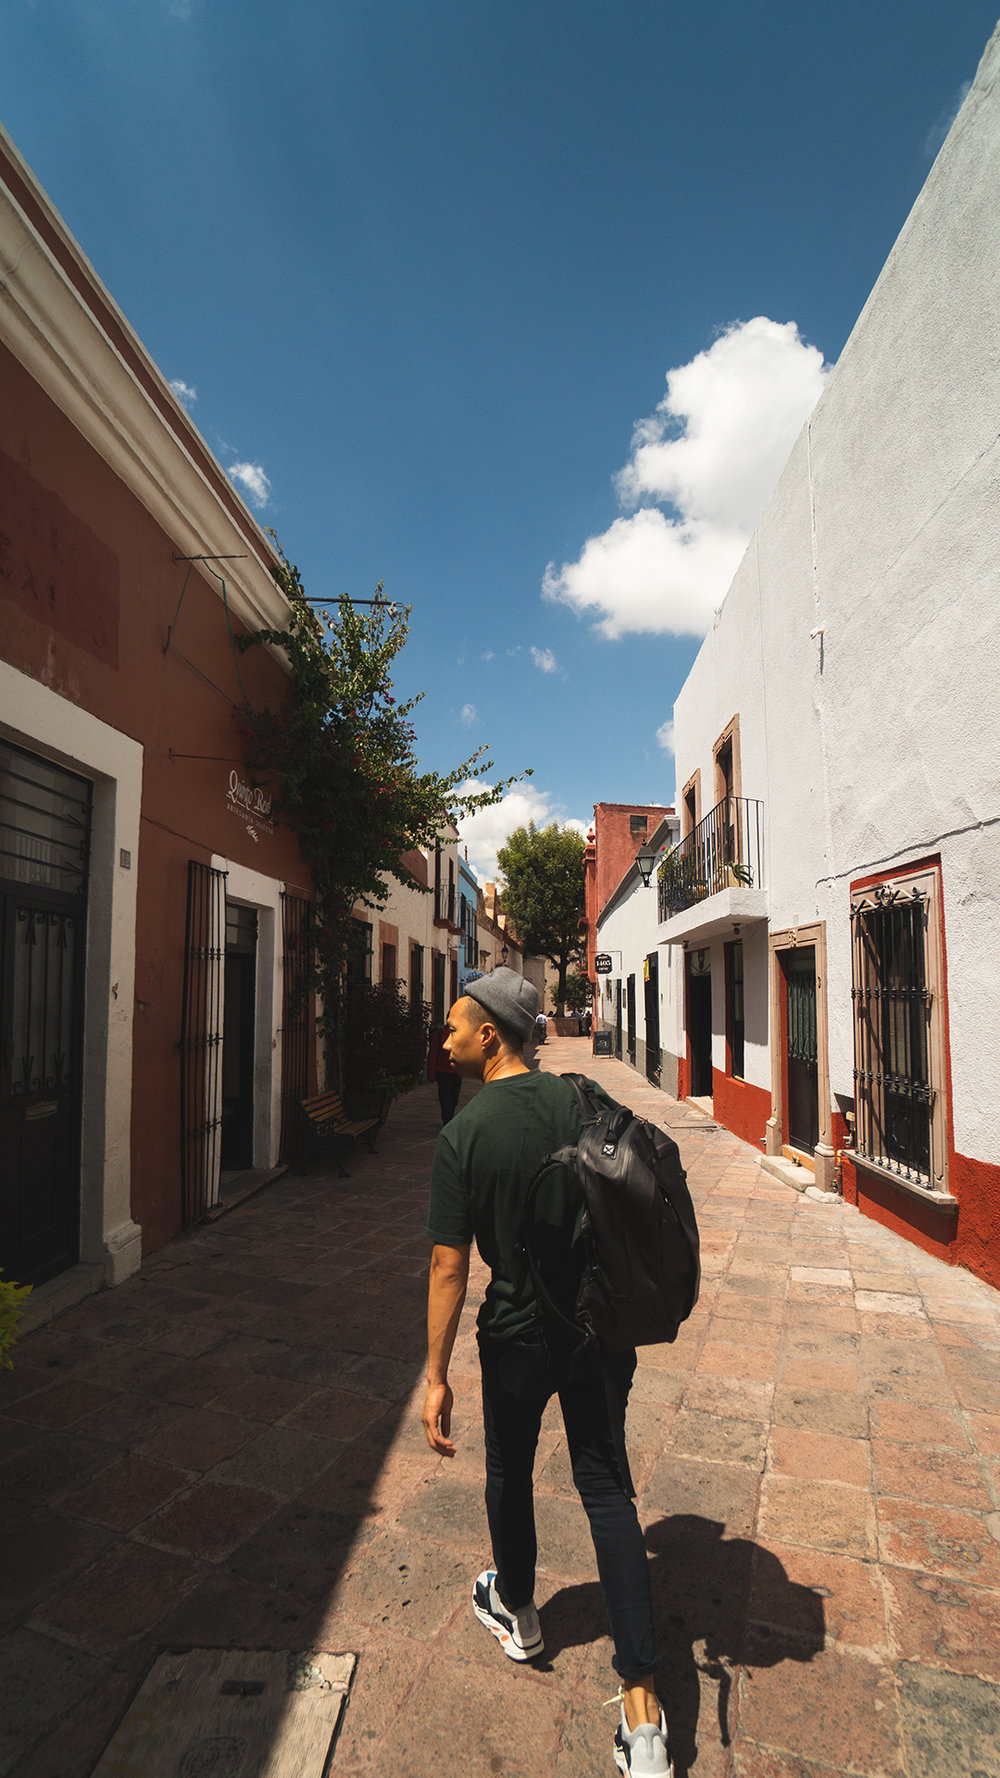 anh-t-nguyen-walking-alley-queretaro-mexico